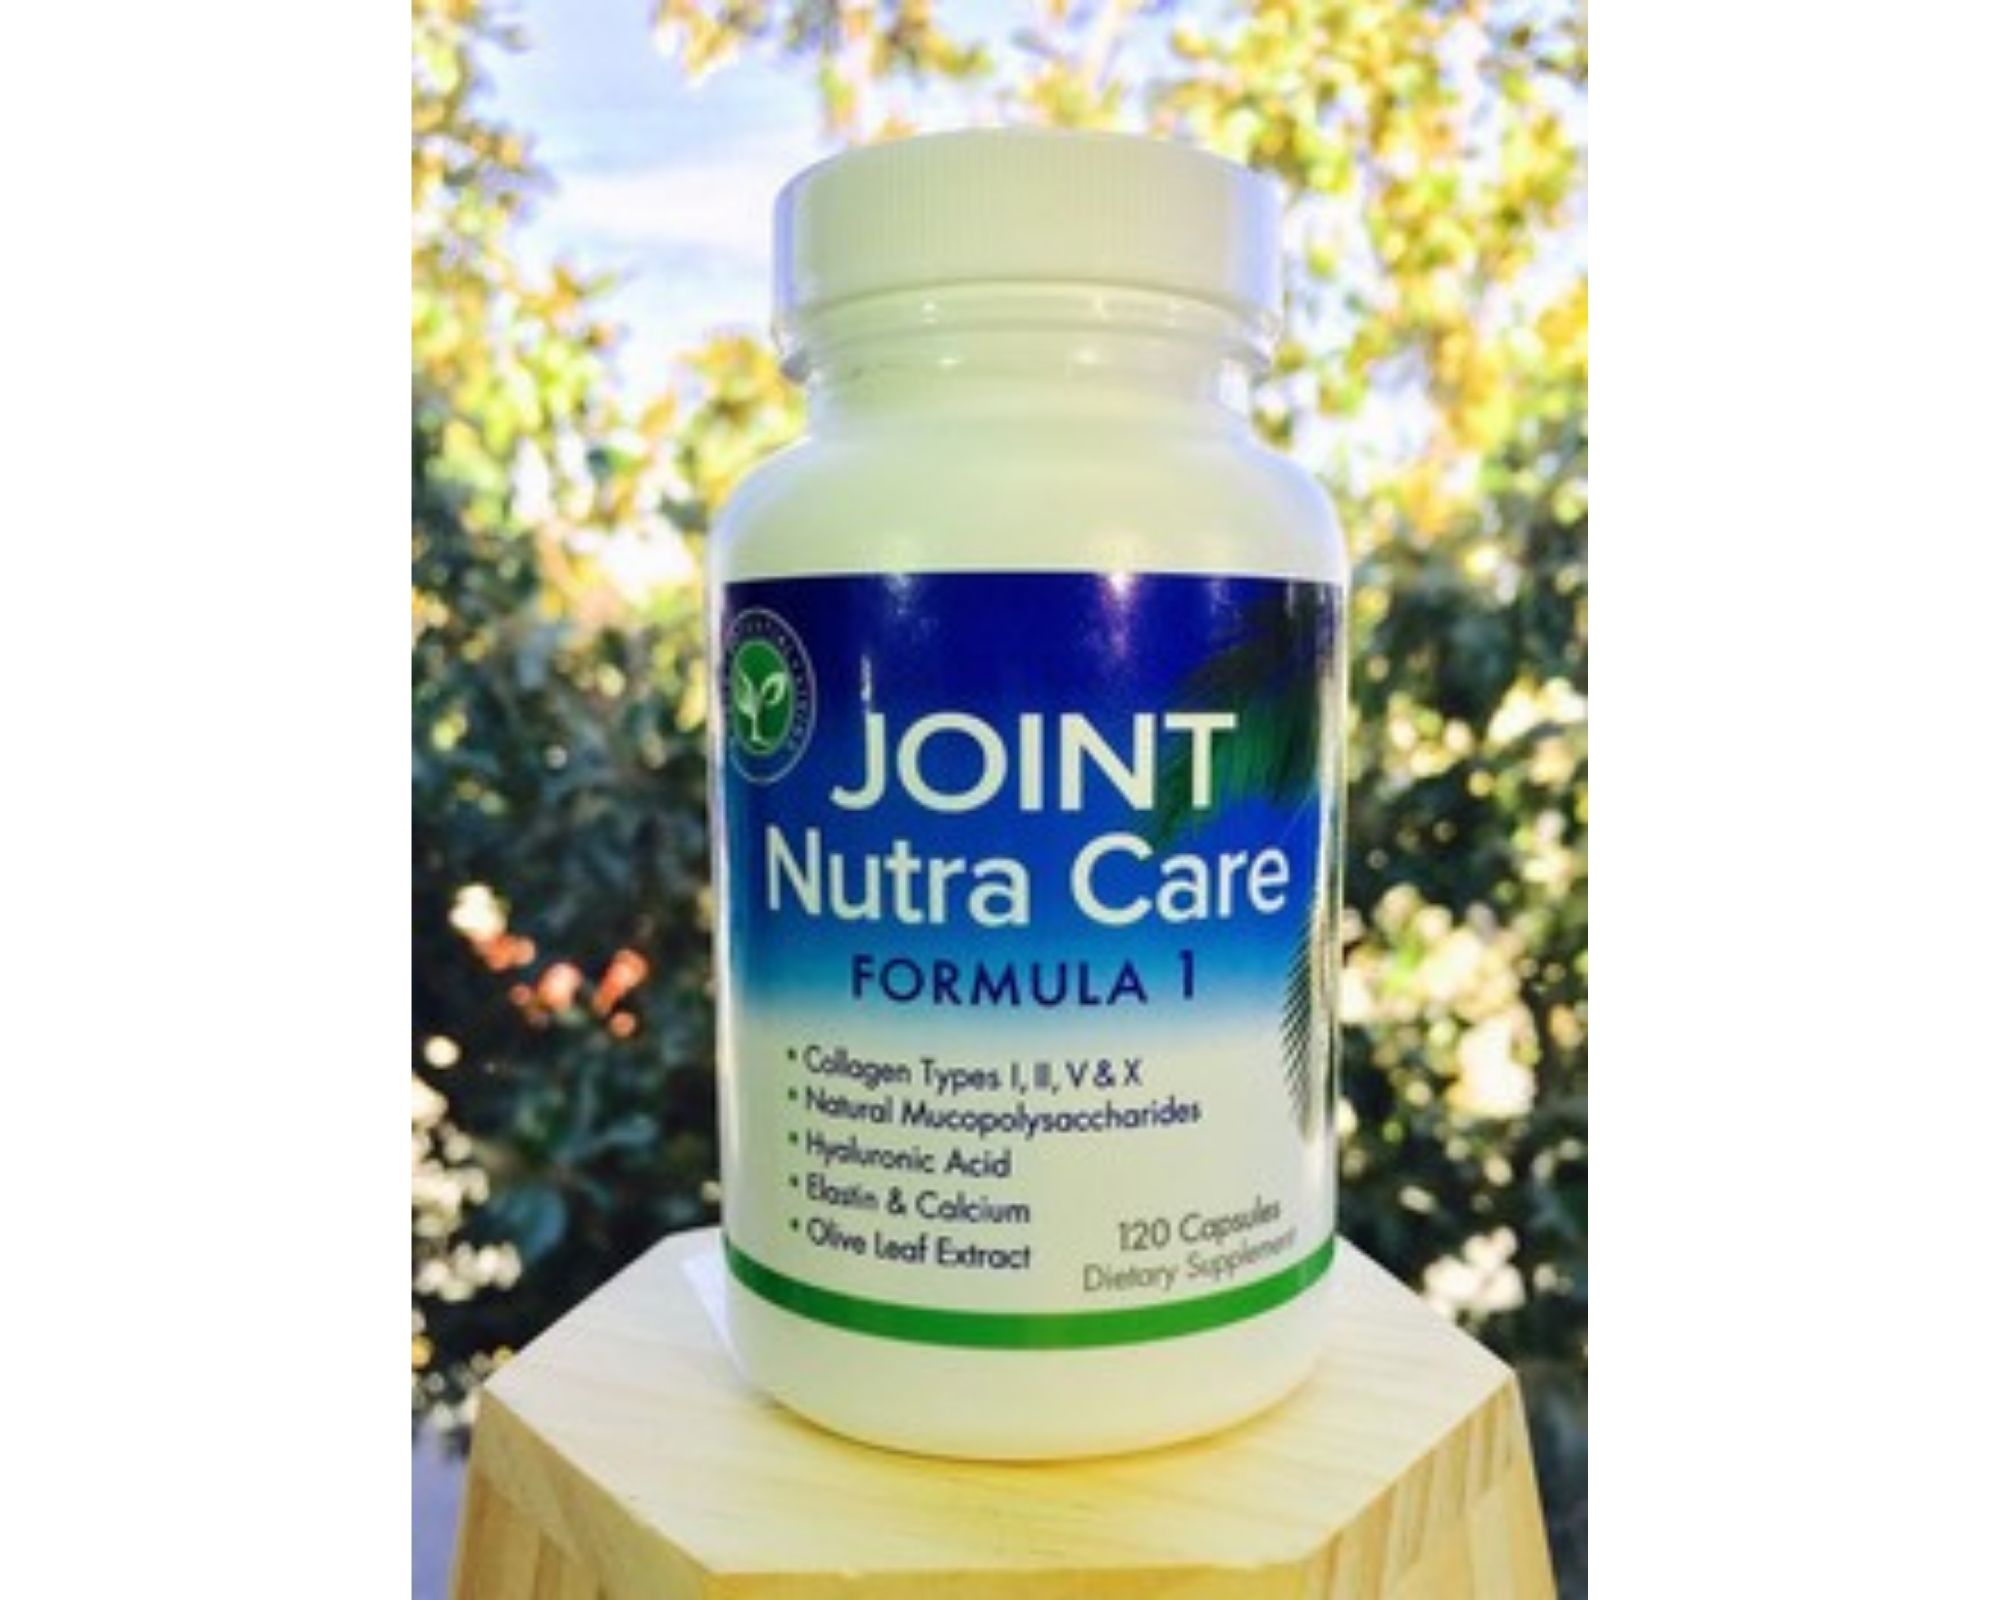 Bottle of Joint Nutra Care - with olive leaf extract in it